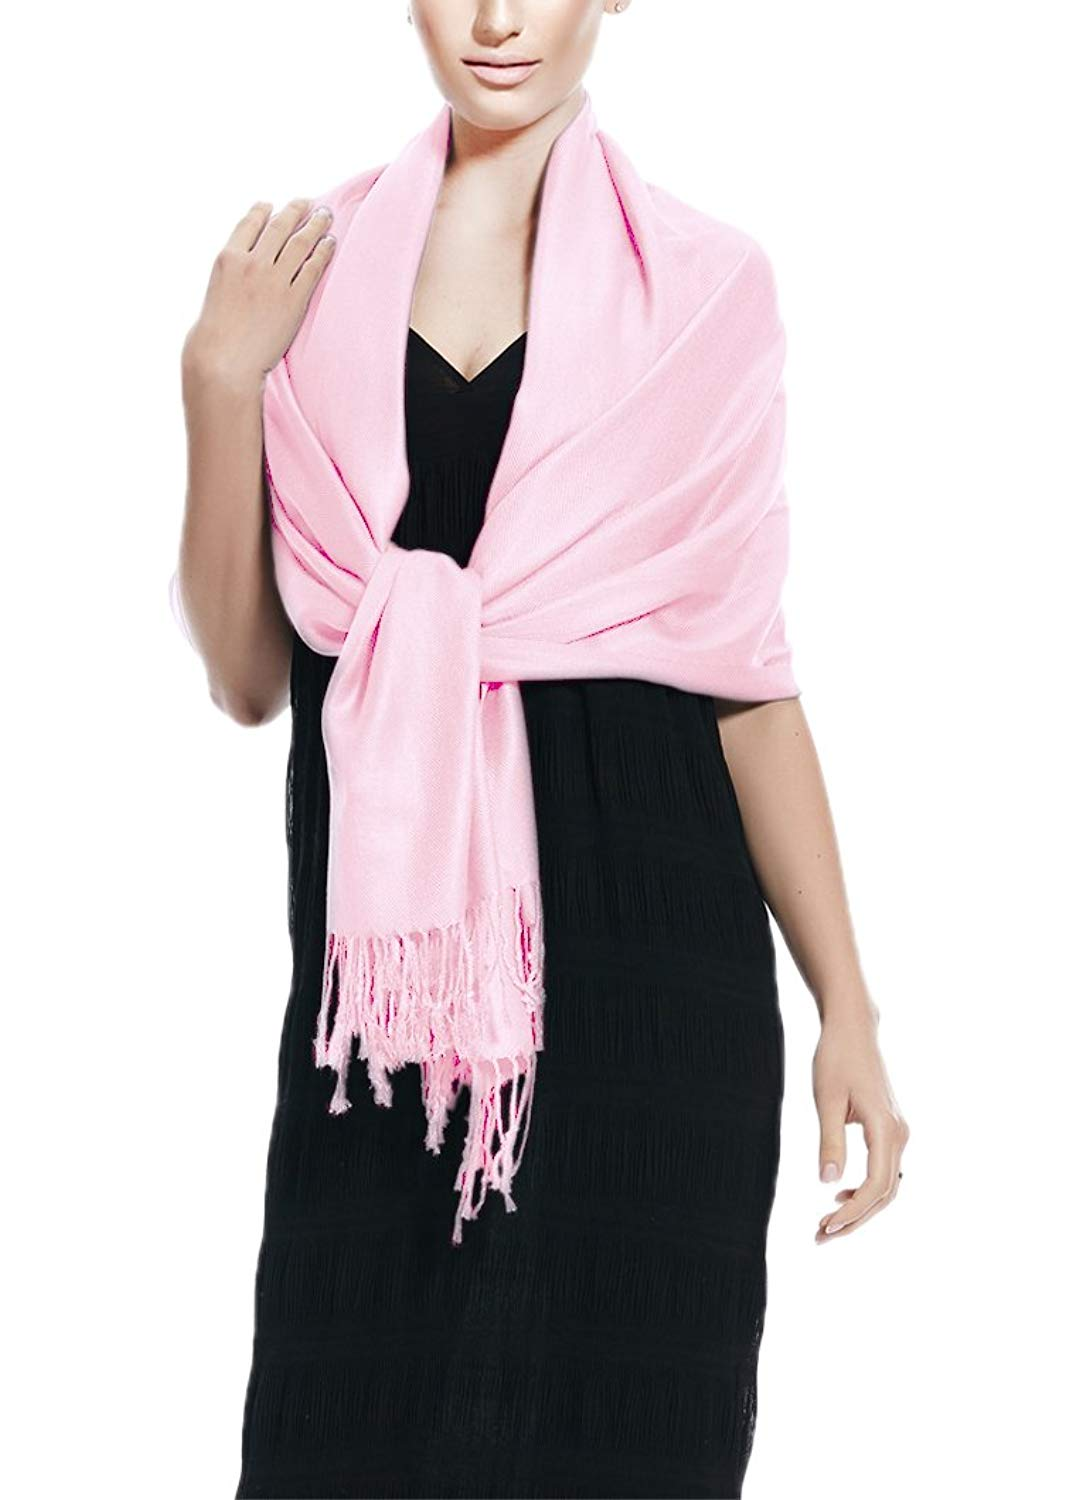 Baby Pink Pashmina Shawl Wrap Peach Couture